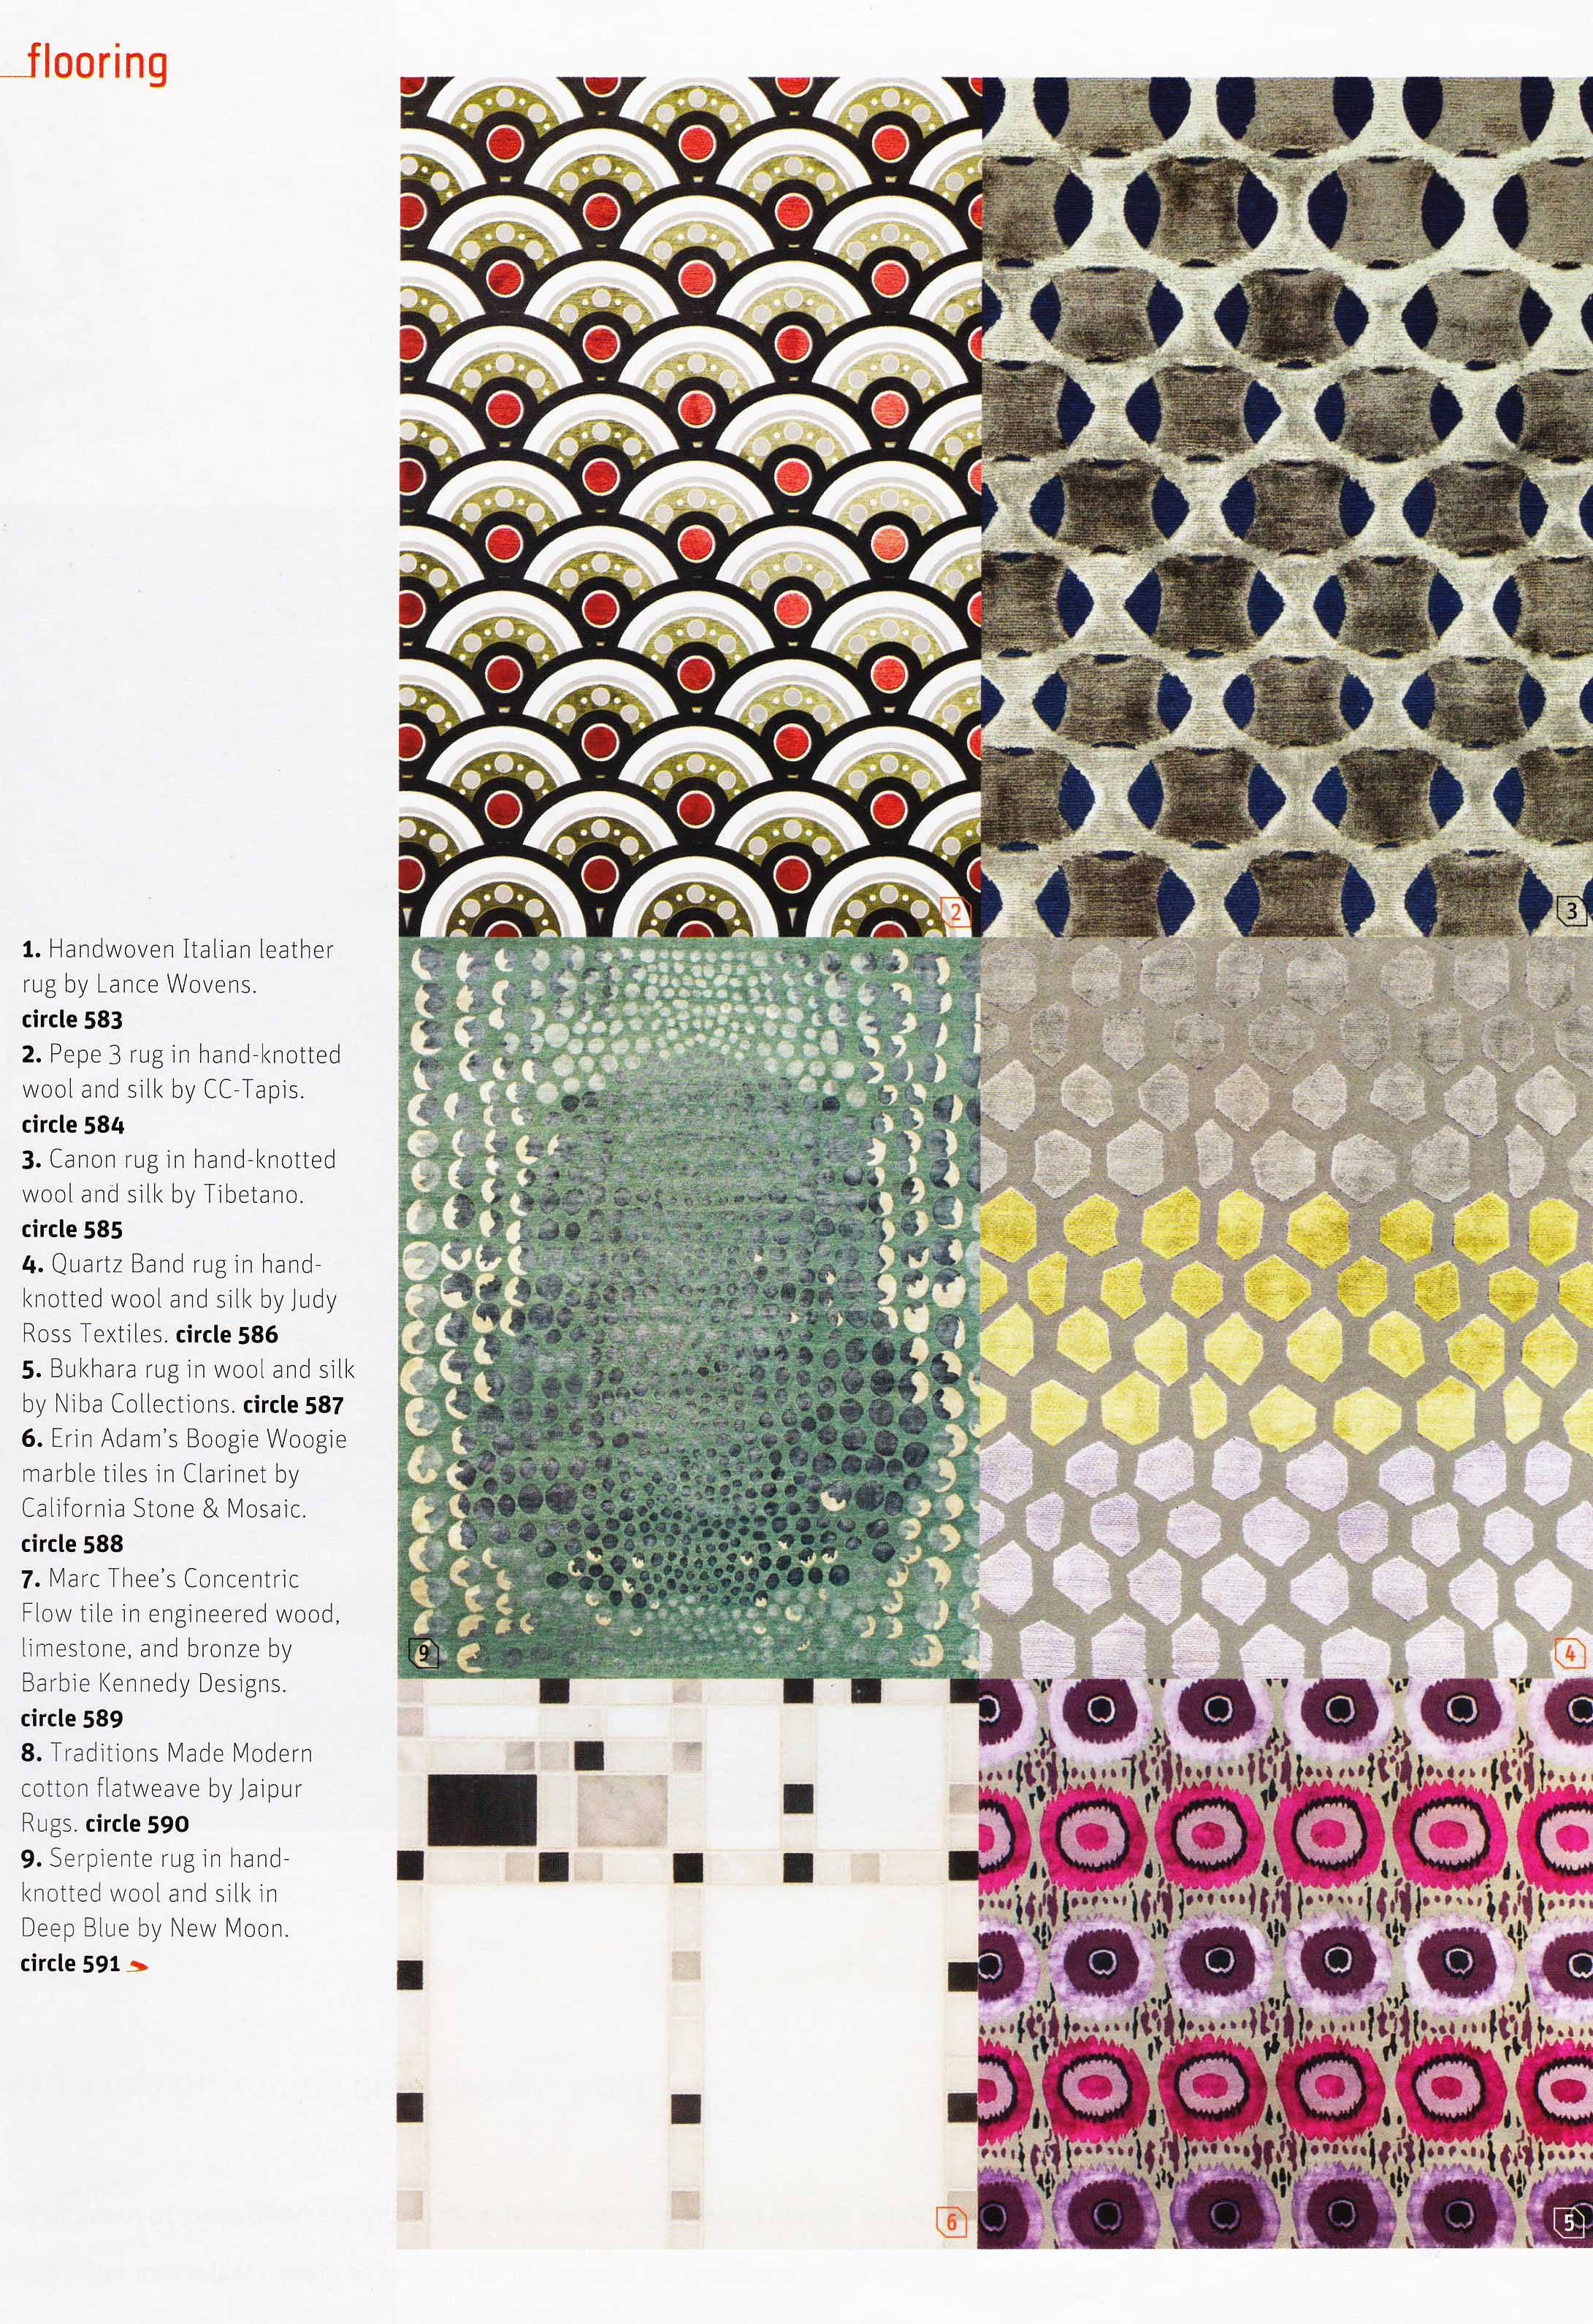 Our Quartz Band Rug Featured In Interior Design Market Tabloid Is Available Custom Sizes And Colorways Contact Studio For All